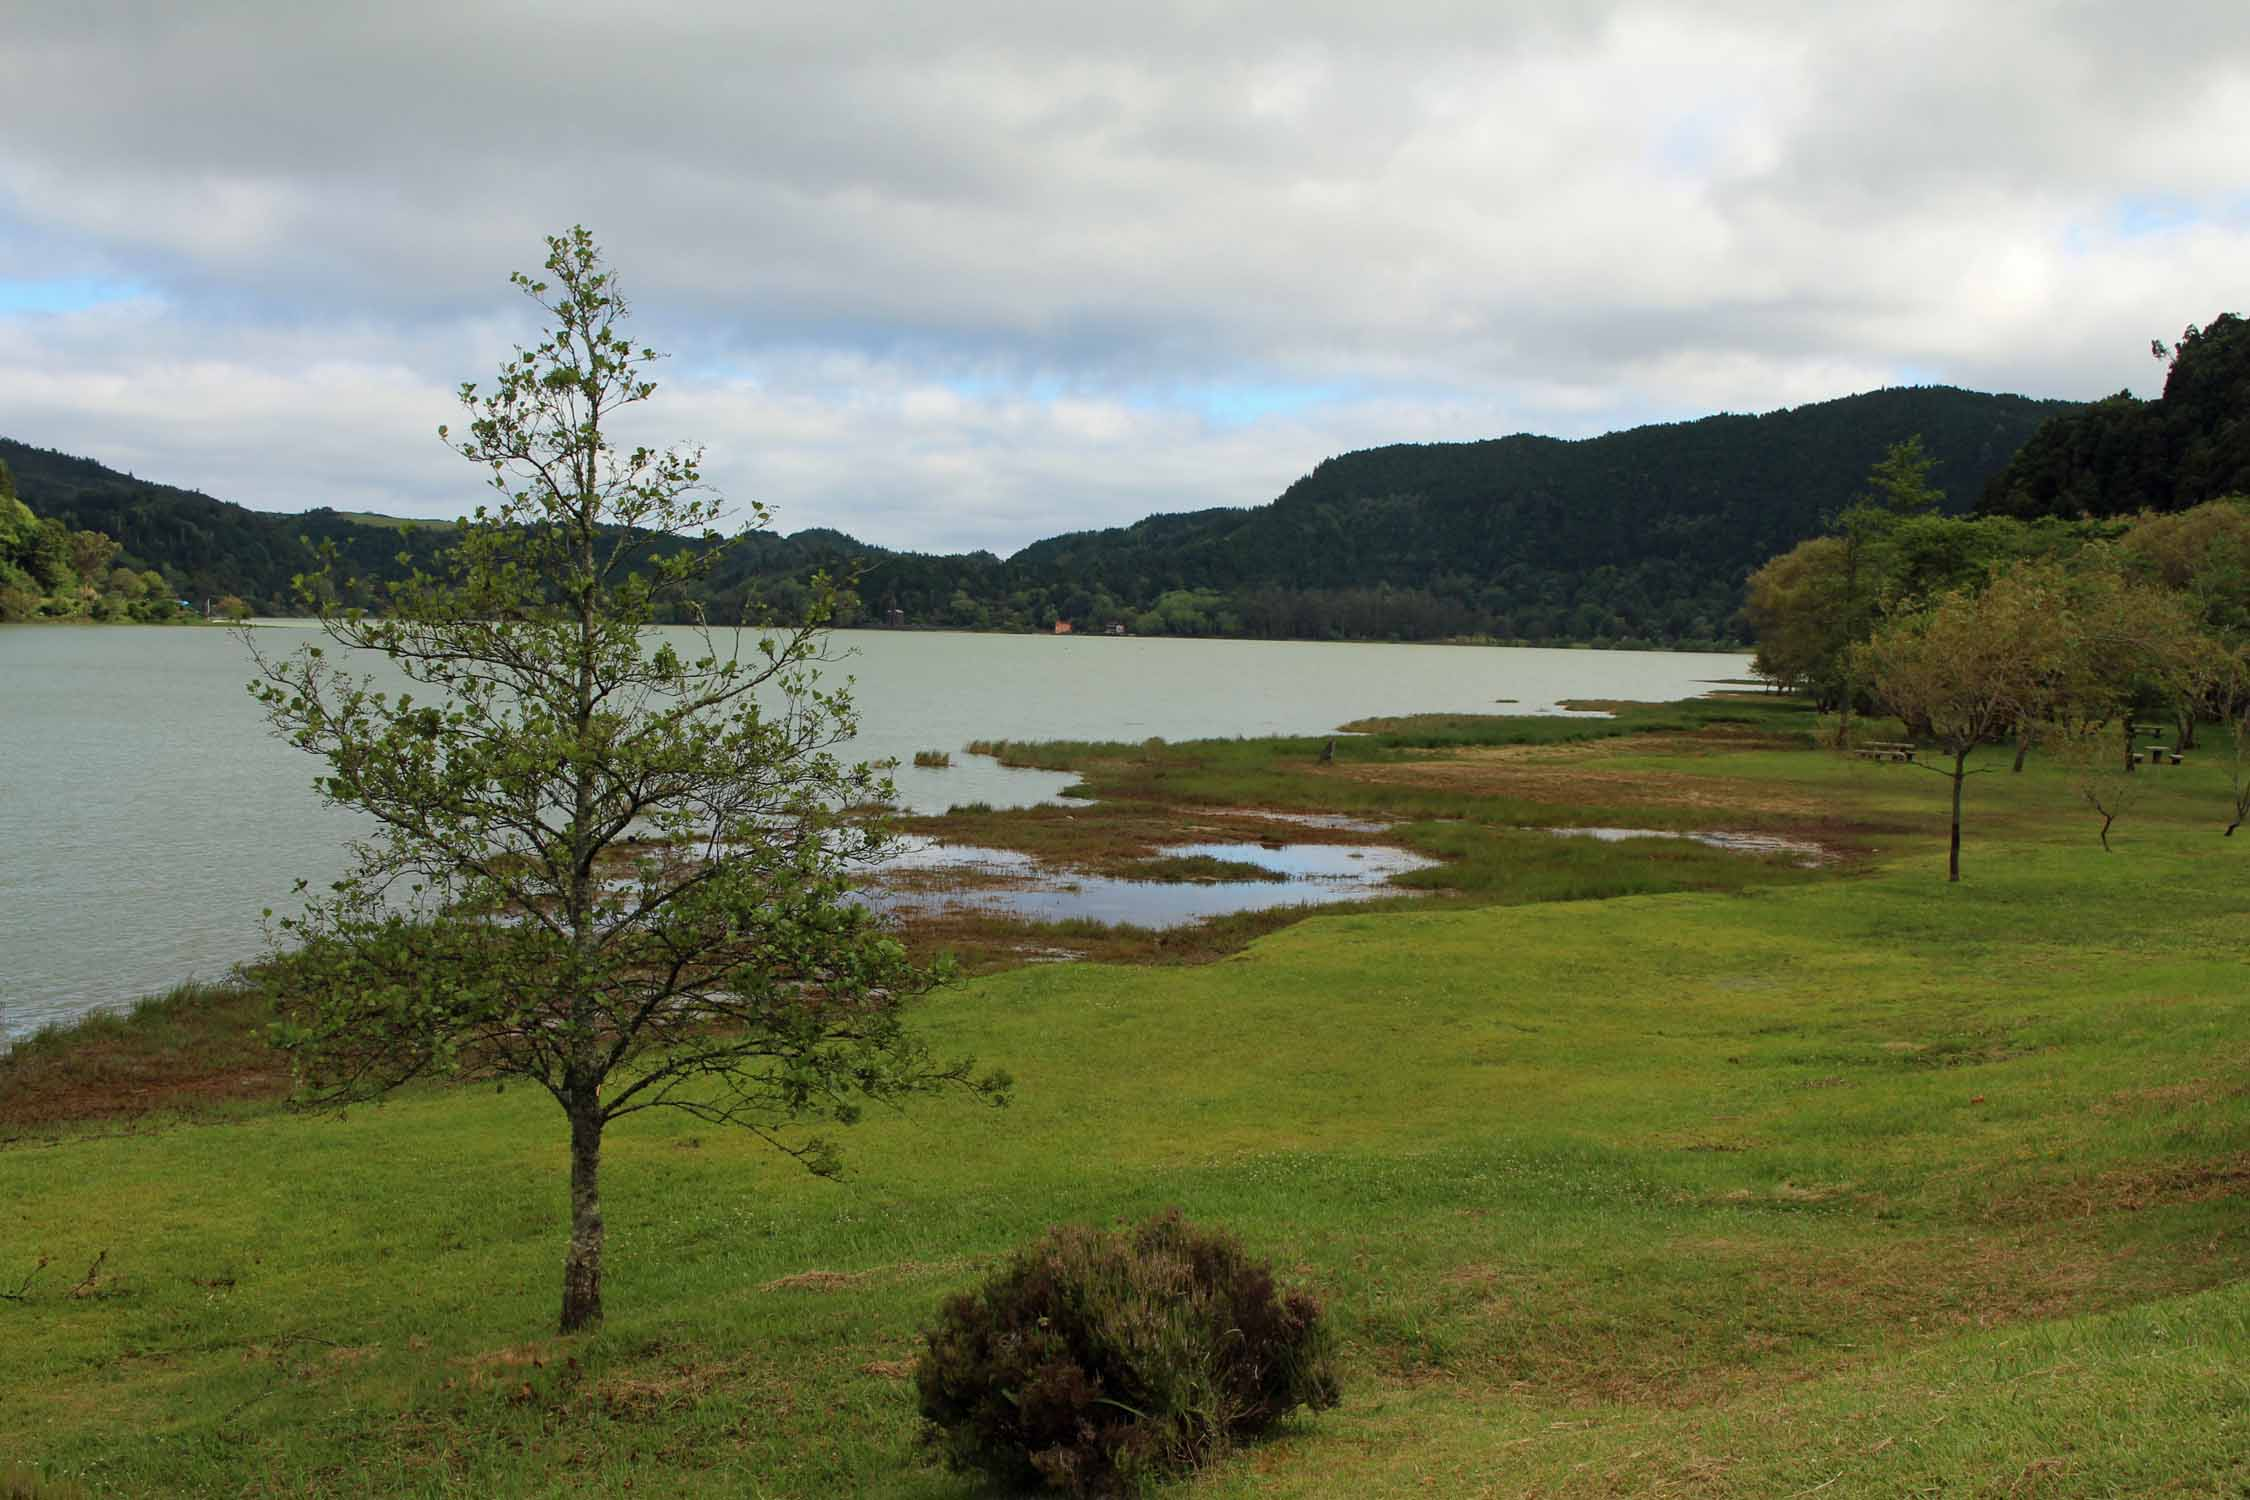 The Furnas lake in São Miguel island, Azores